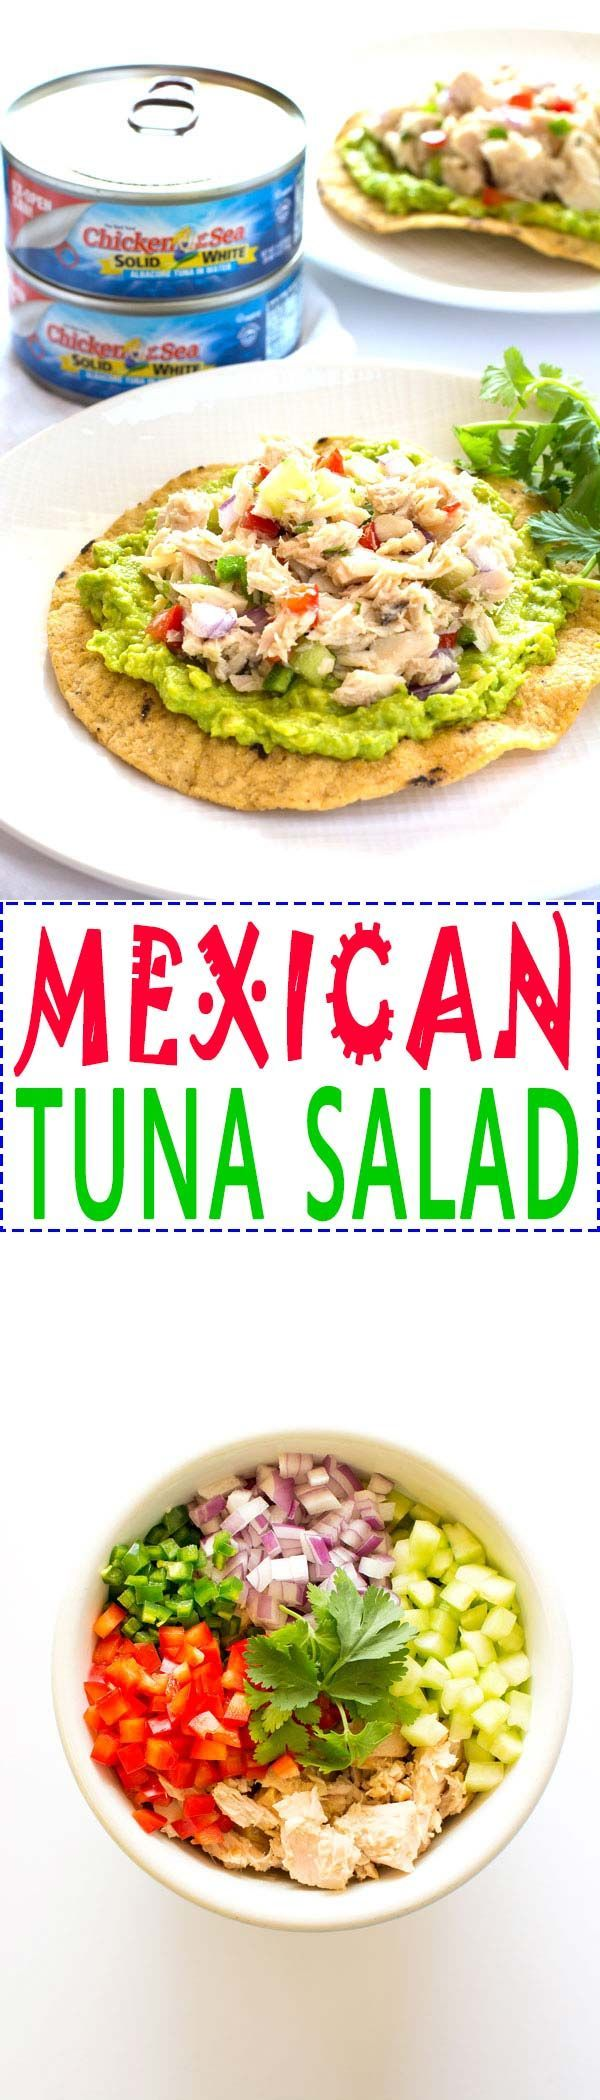 Ad: This Mexican tuna salad is a fiesta for your taste buds! Kick your tuna up a notch with this fresh and easy version that goes well with avocado!